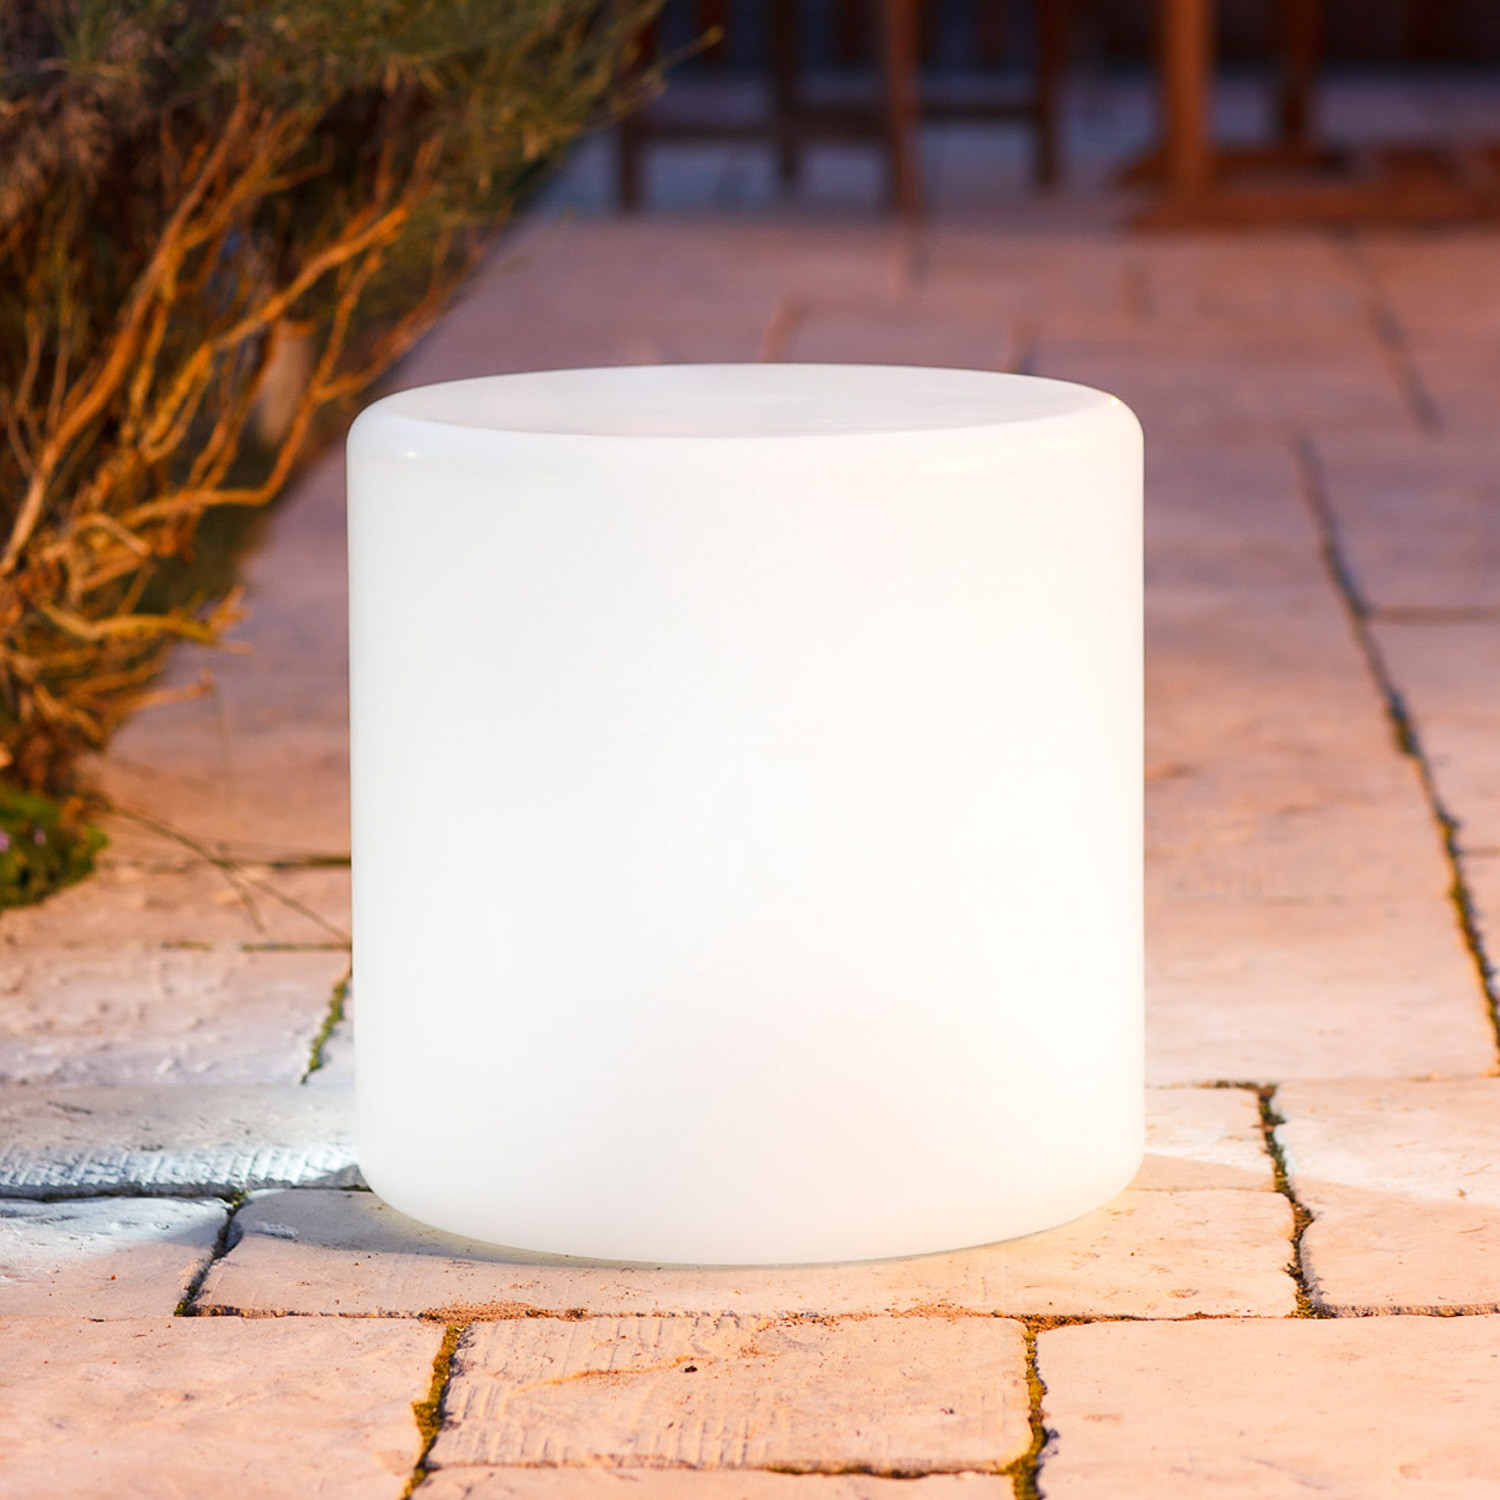 Cylinder Light by Sophie Ruhland